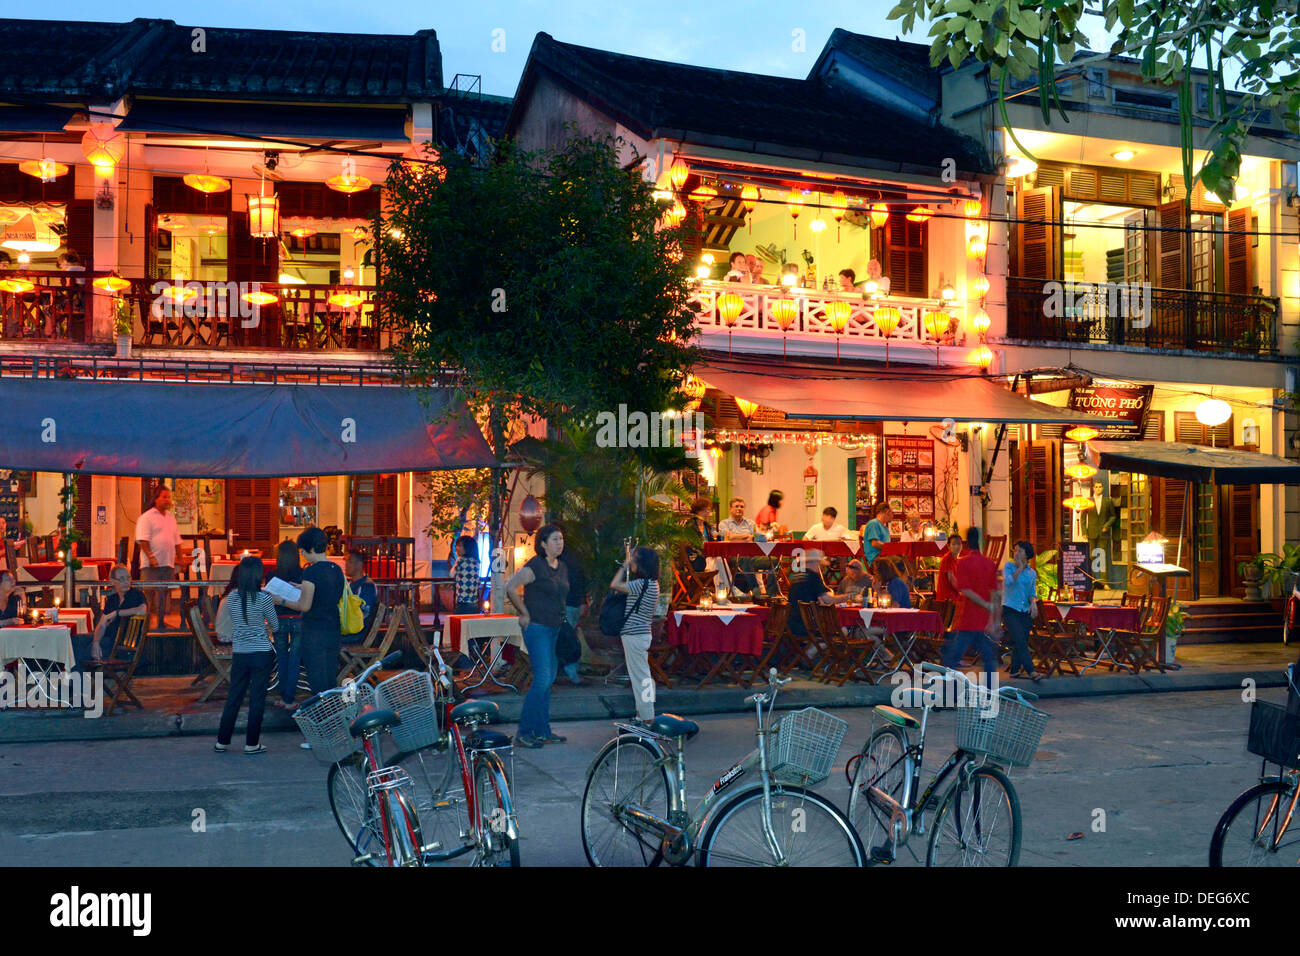 Hoi An, UNESCO World Heritage Site, Vietnam, Indochina, Southeast Asia, Asia - Stock Image